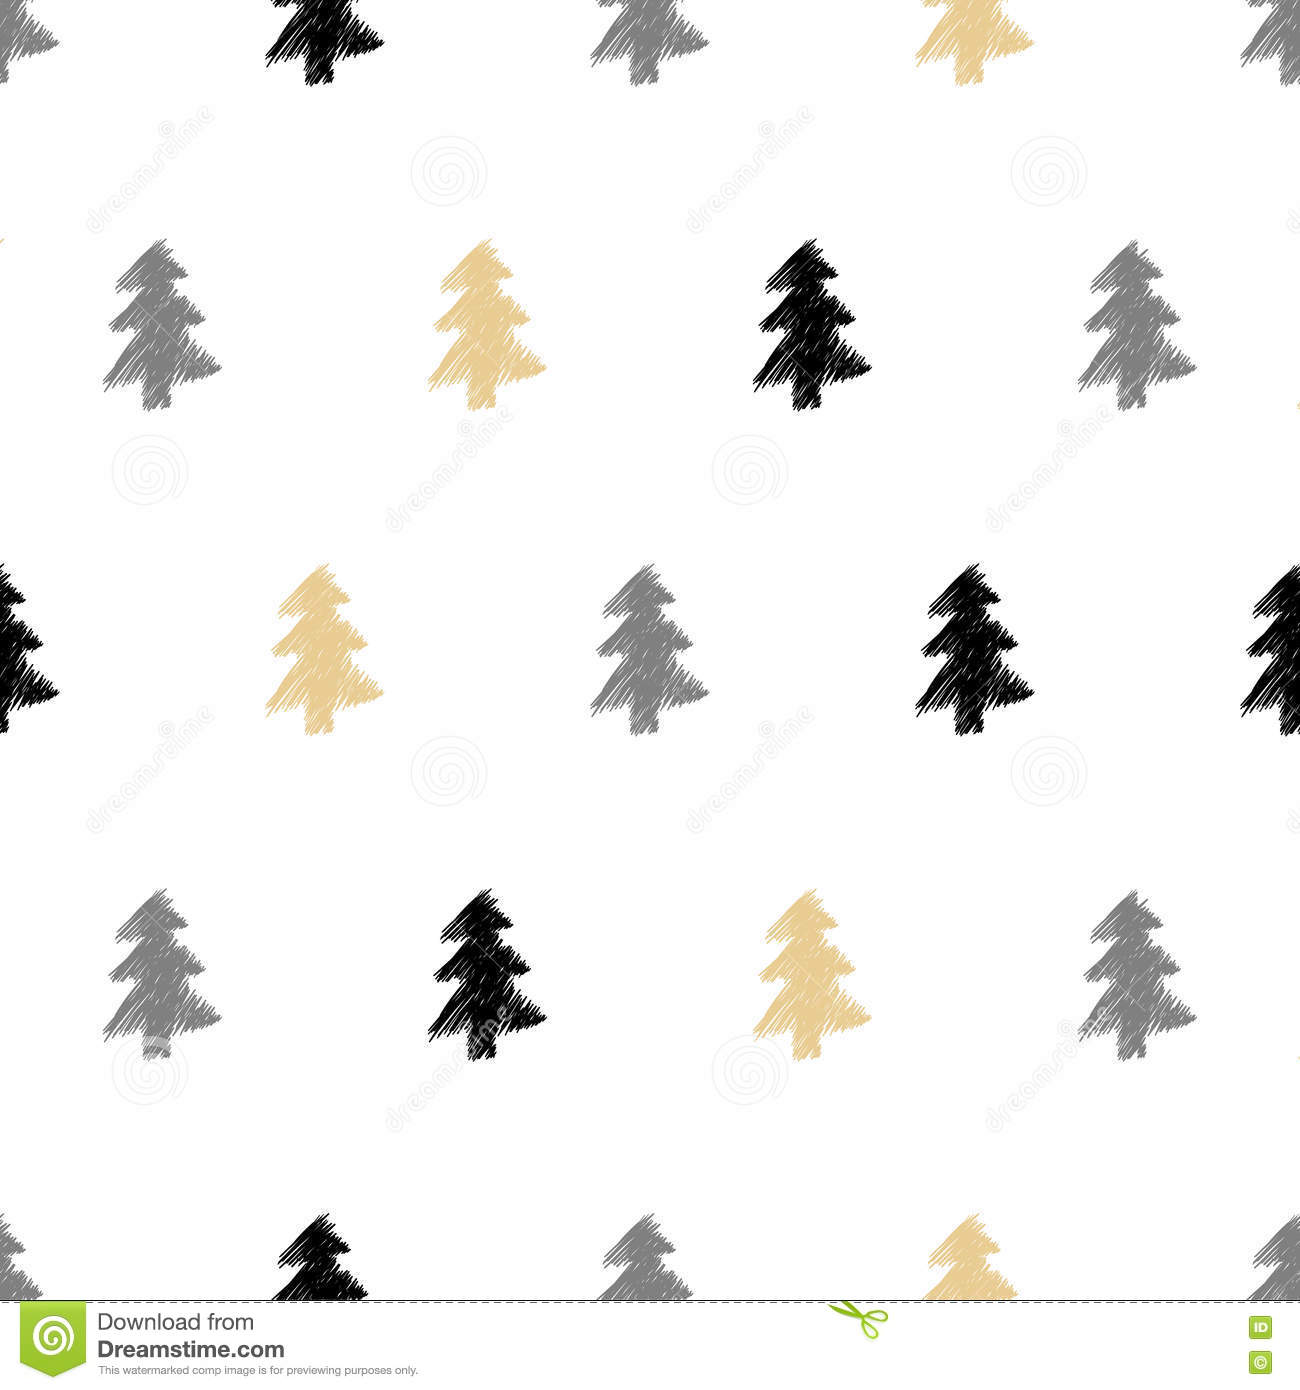 Vector Hand Drawn Christmas Tree Fir Seamless Pattern In